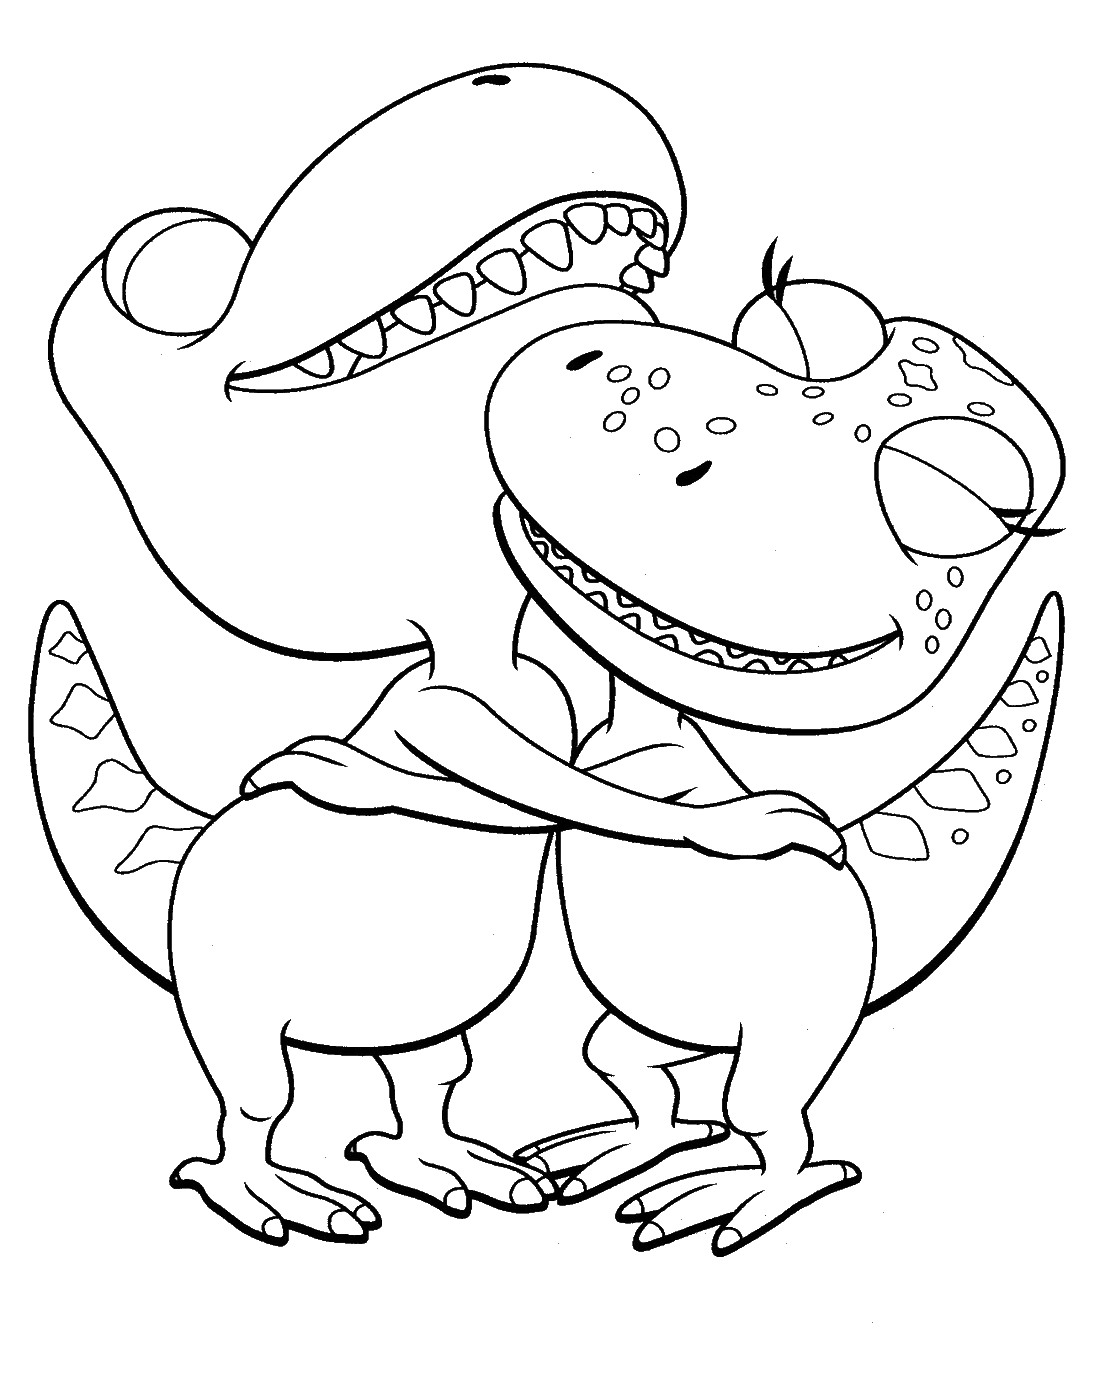 Buddy Coloring Pages at GetDrawings.com | Free for personal ...